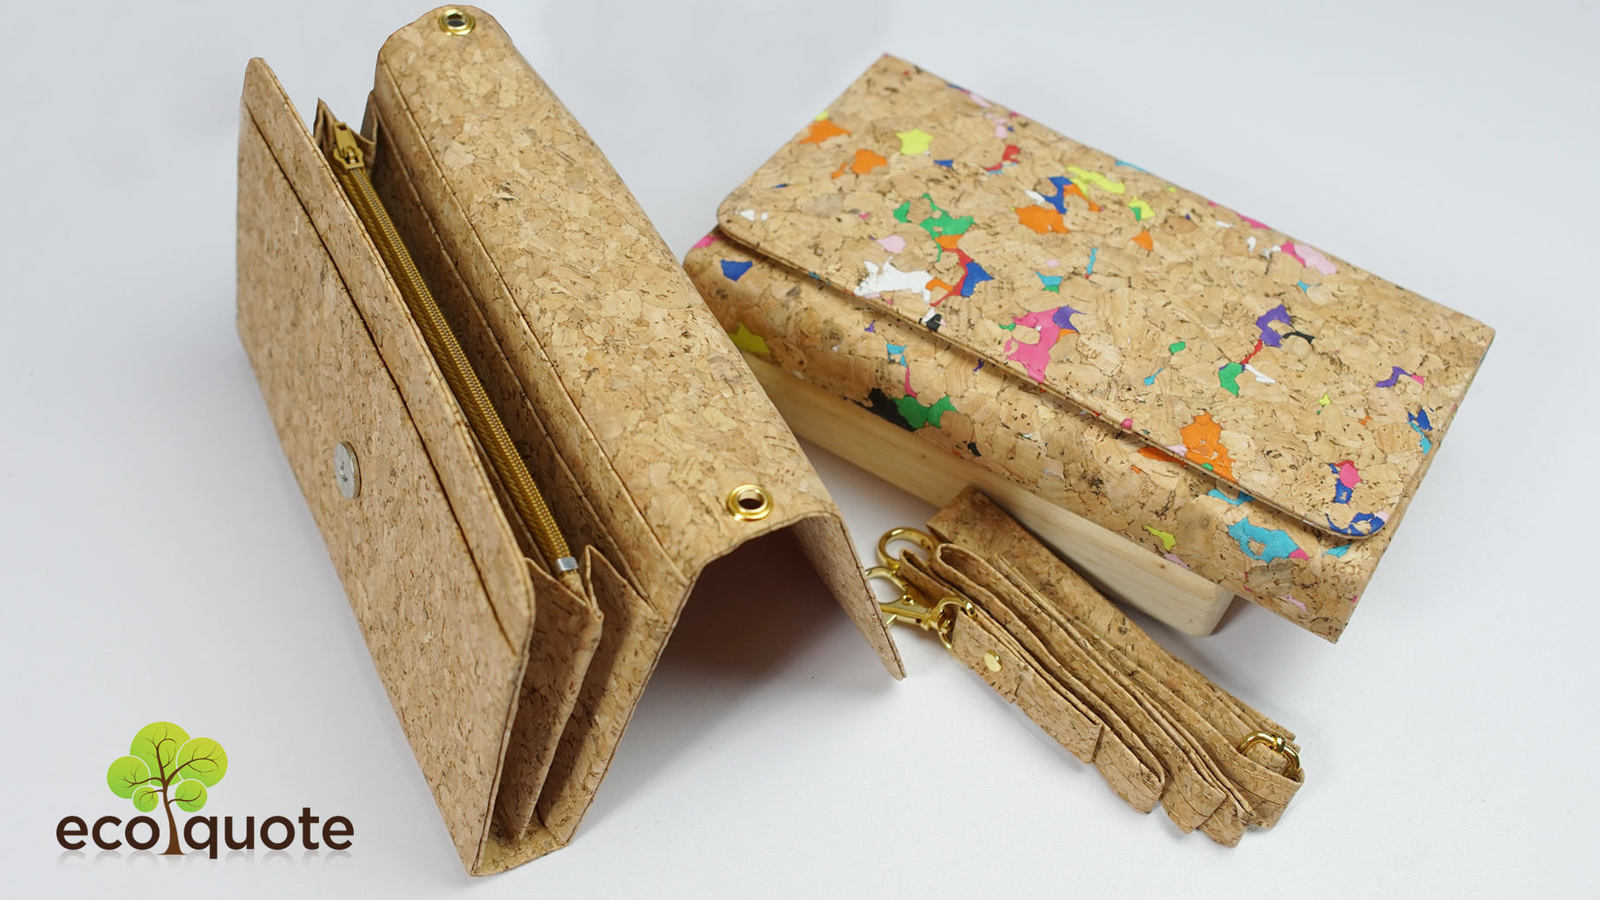 EcoQuote Long Wallet 3 Ways Use Handmade Cork Eco Friendly Material for Vegan